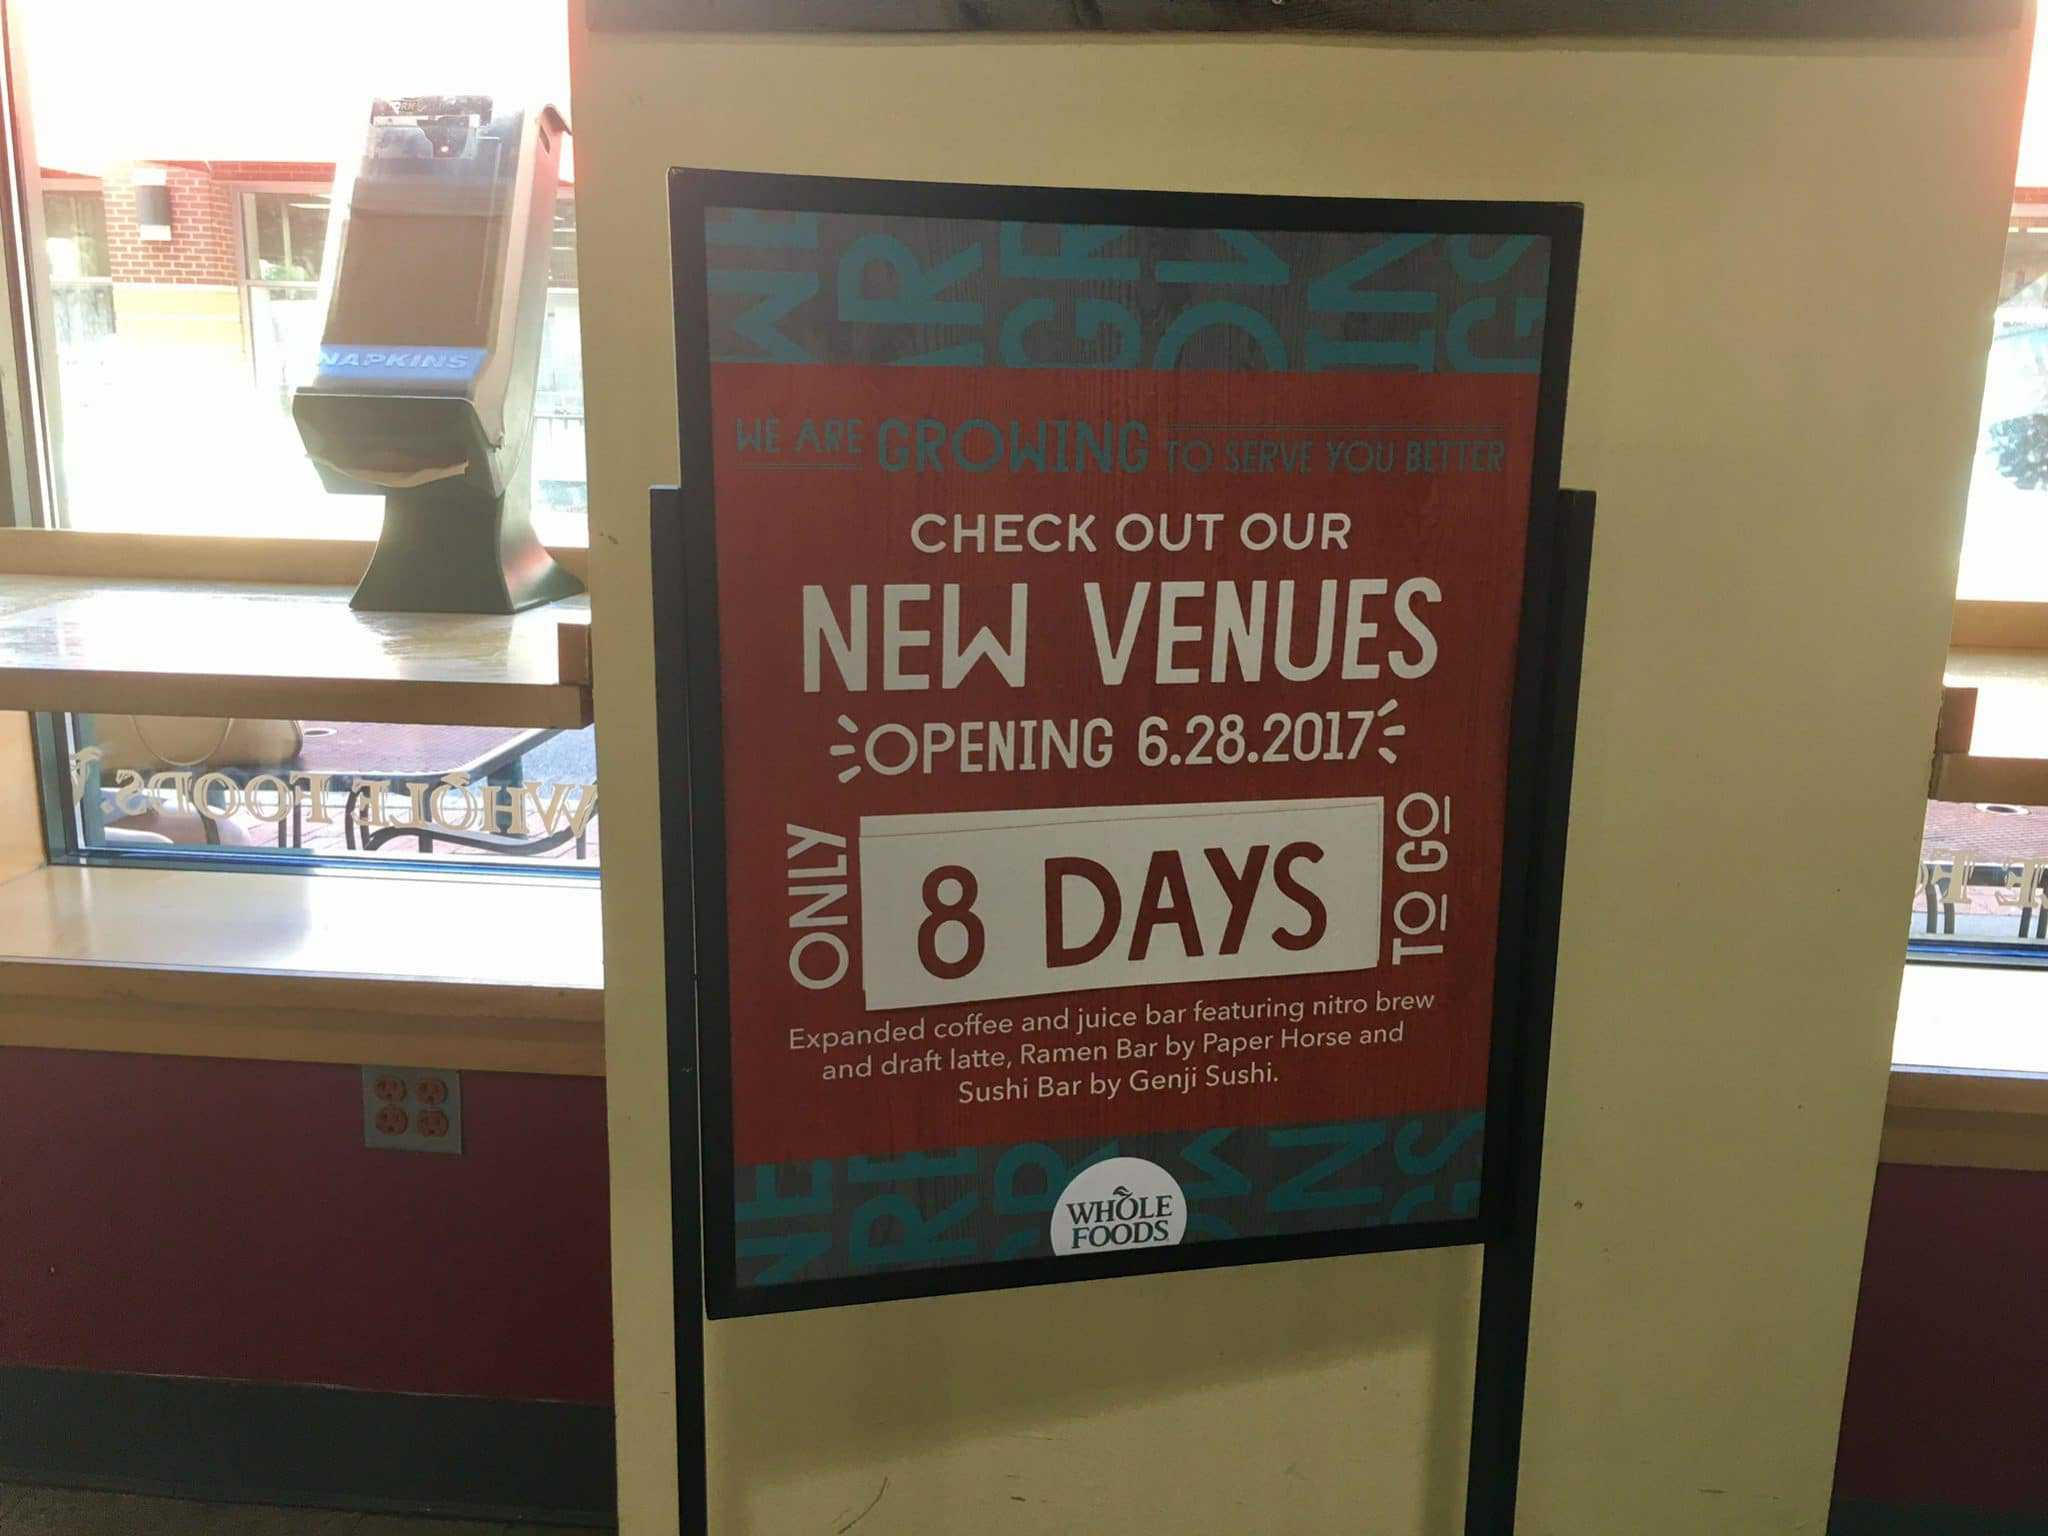 UPDATED: Whole Foods renovations unveiled next week - The results of the extensive renovations of the Whole Foods Market in Silver Spring will be unveiled Wednesday, June 28.